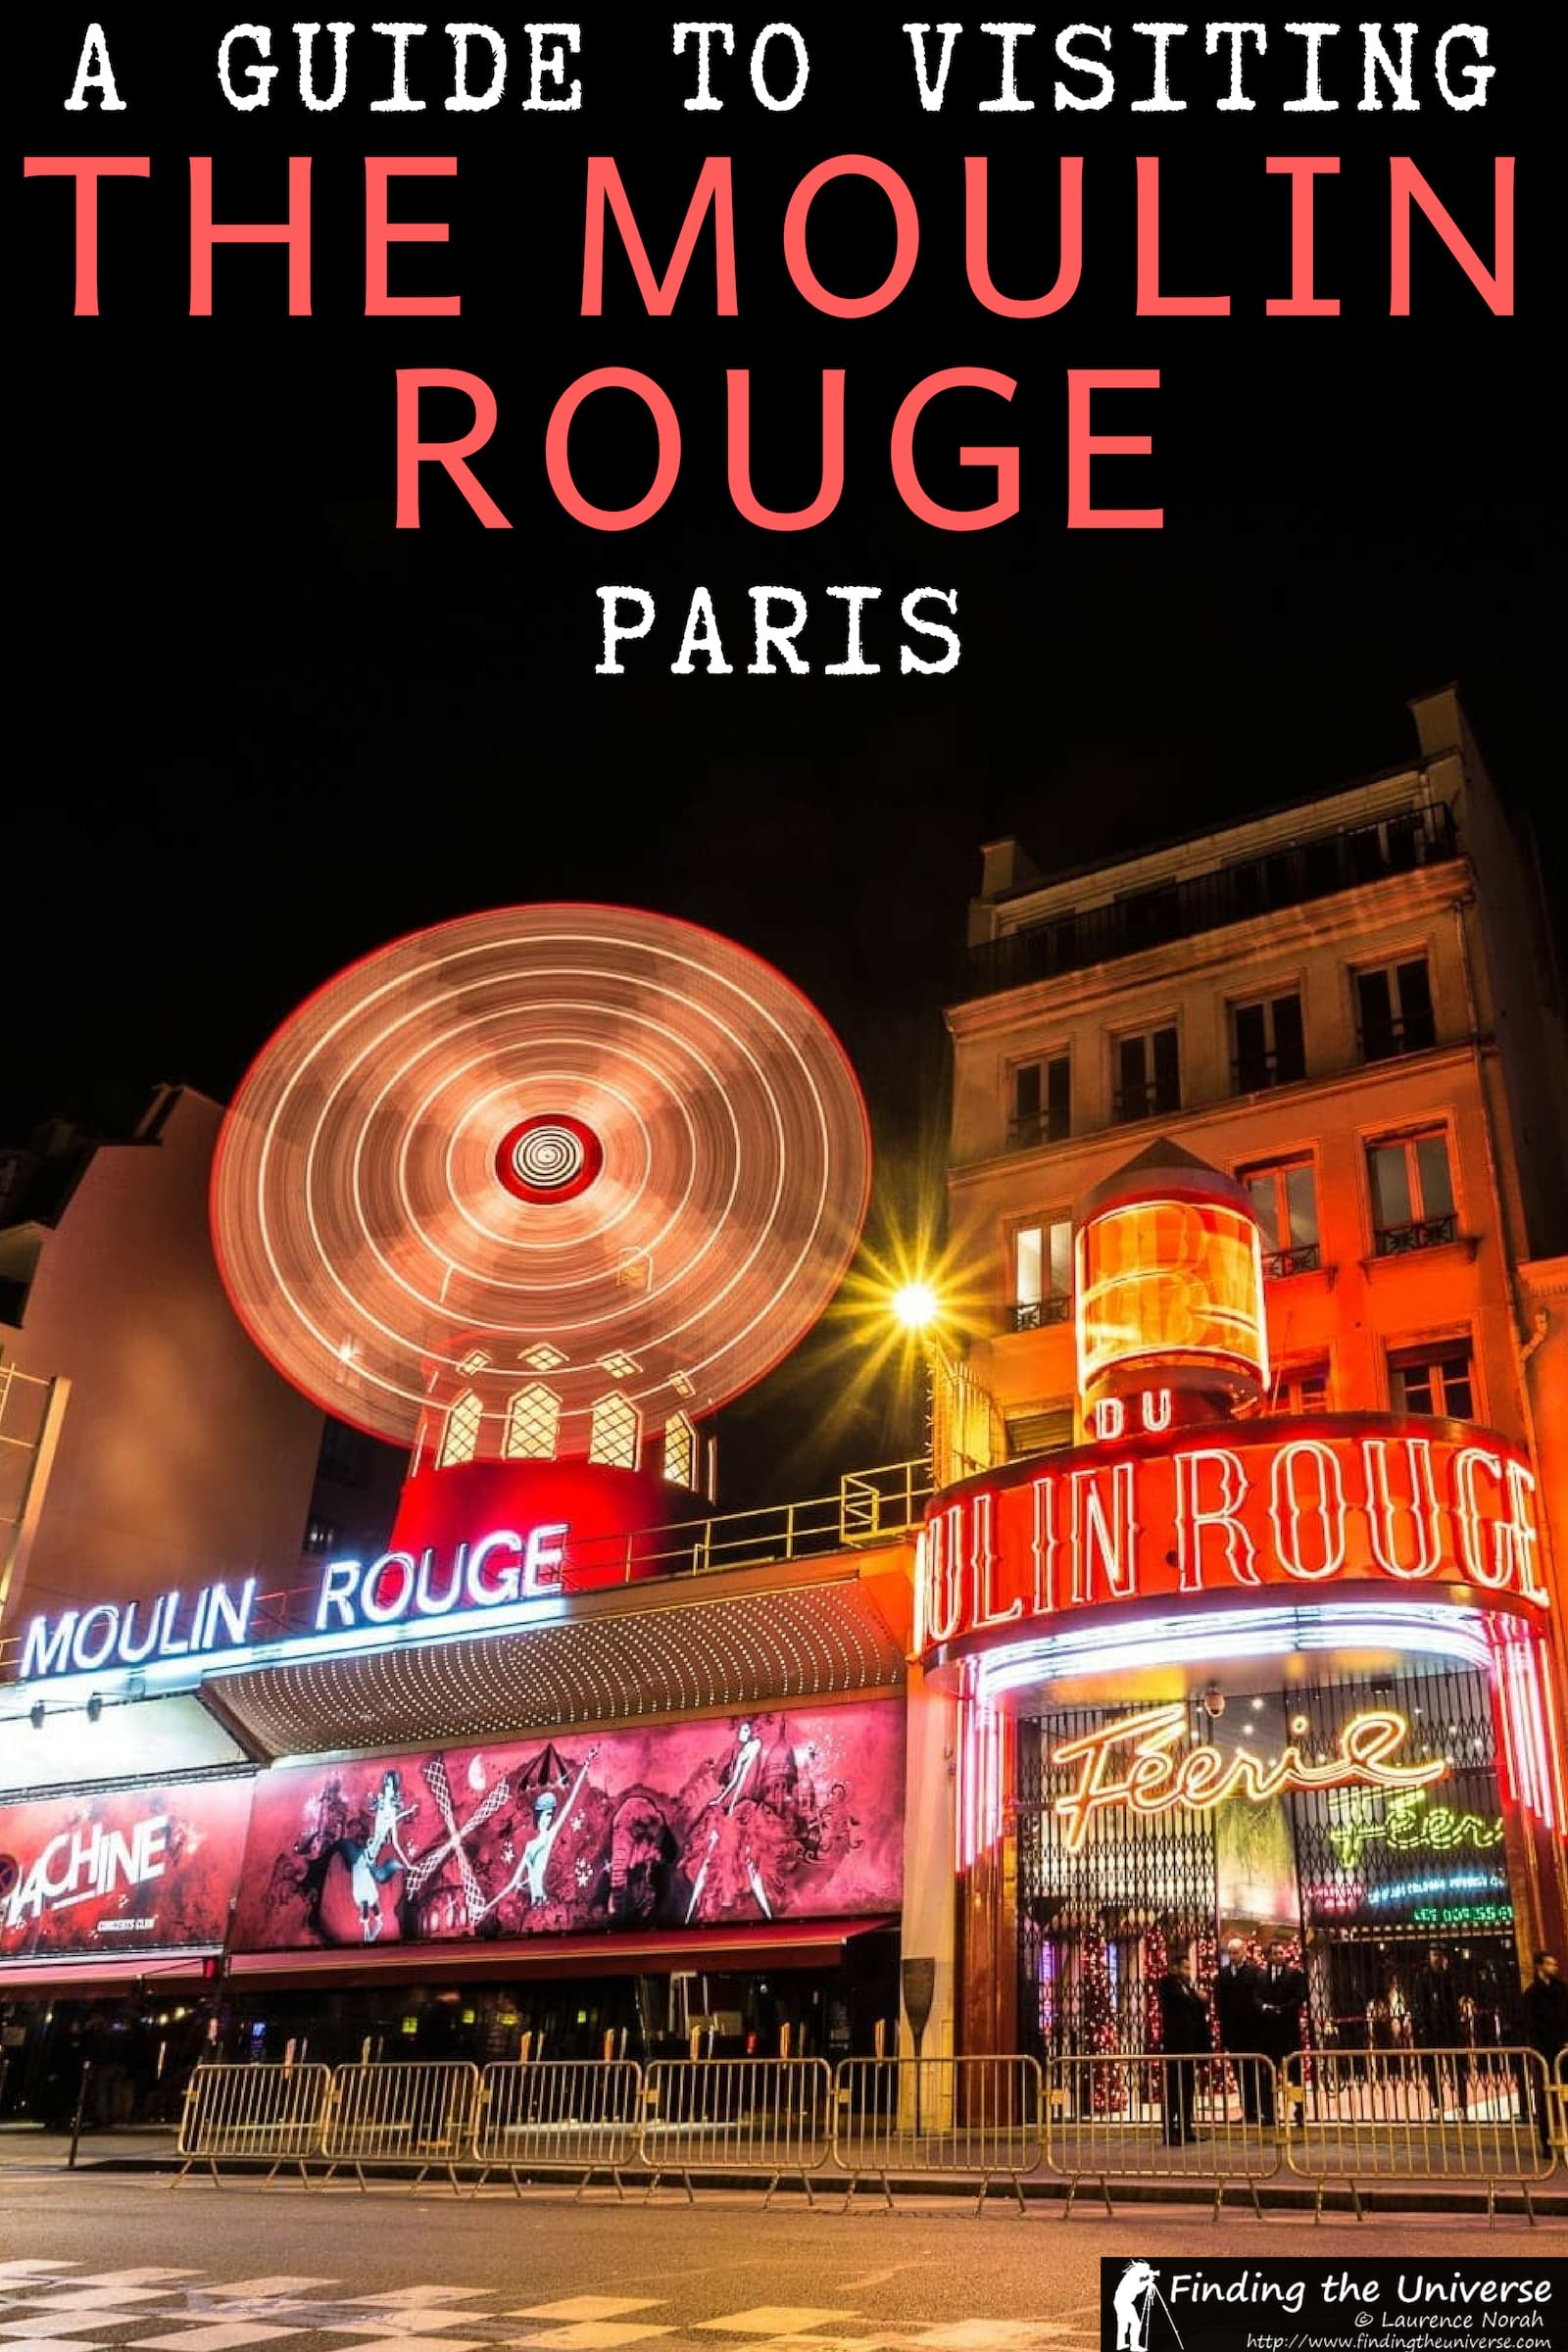 A detailed guide to visiting the Moulin Rouge in Paris, with everything you need to know to plan your own visit, including ticket options, getting here and more! #paris #france #moulinrouge